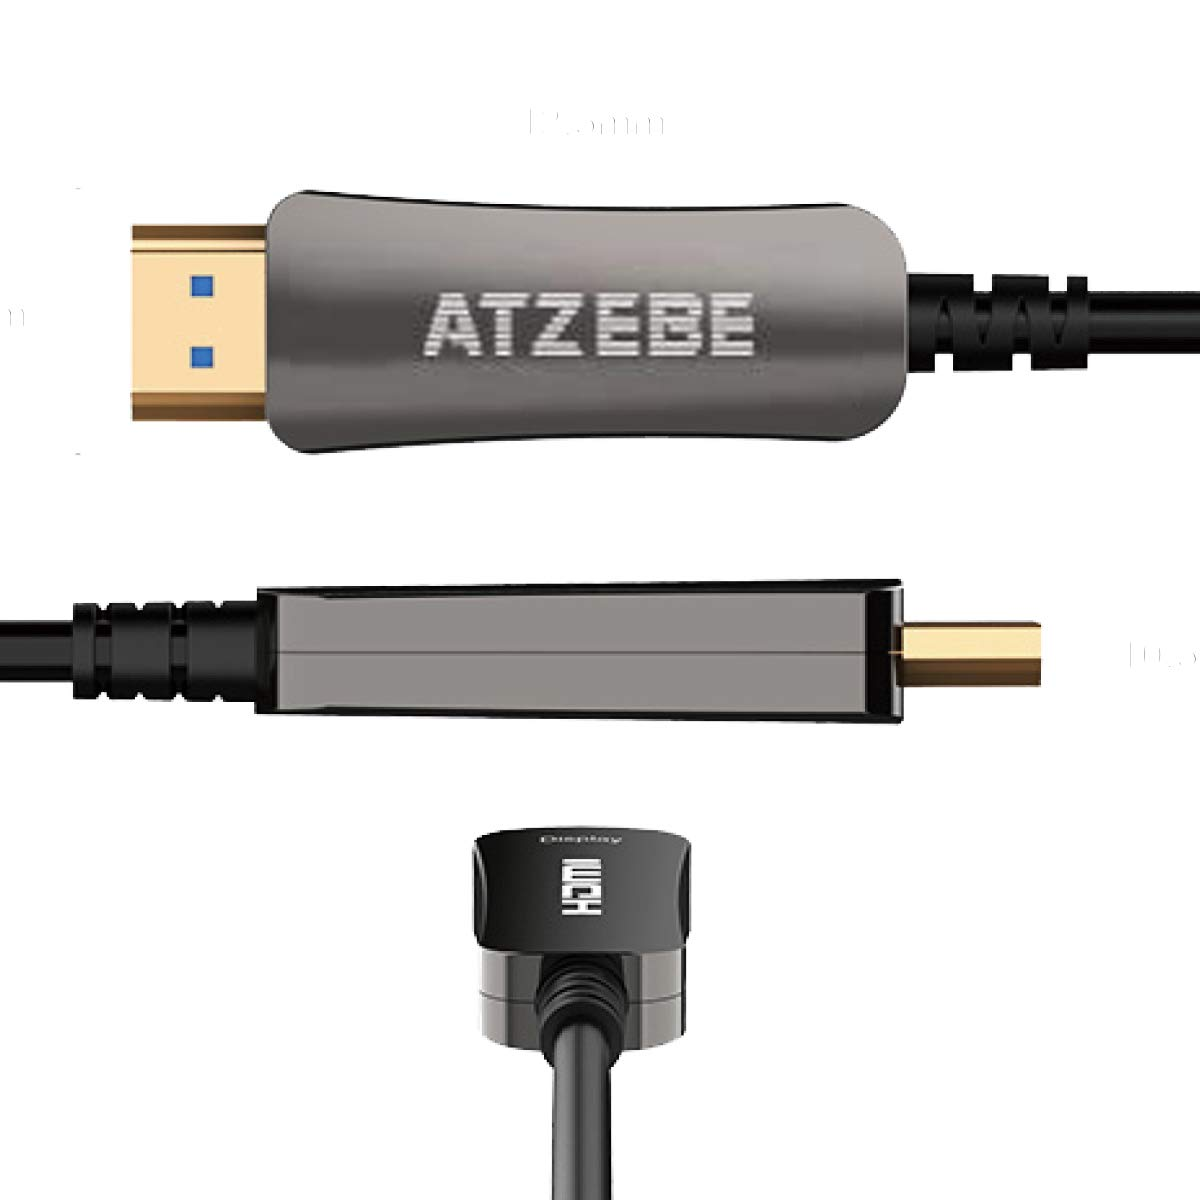 Fiber Optic HDMI Cable Supports 4K at 60Hz 4:4:4, Dolby Vision, HDR High Speed 18Gbps 3D Slim and Flexible Active HDMI Cable ATZEBE Fiber HDMI Cable 4k 50ft